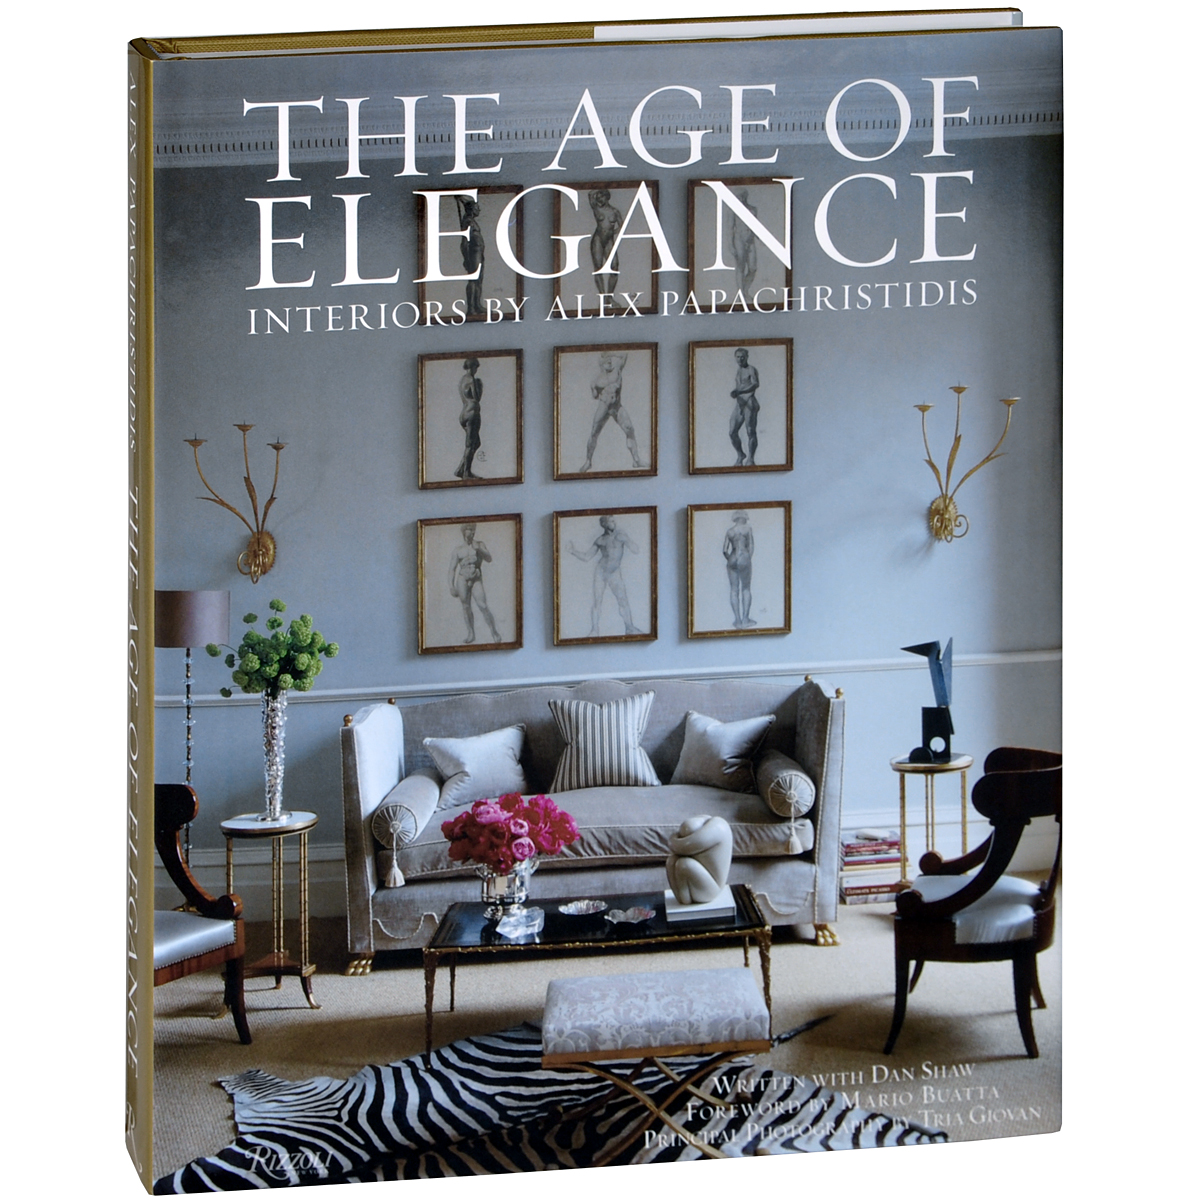 The Age of Elegance: Interiors by Alex Papachristidis intername vera gerasimova houses apartments dressing of an interior